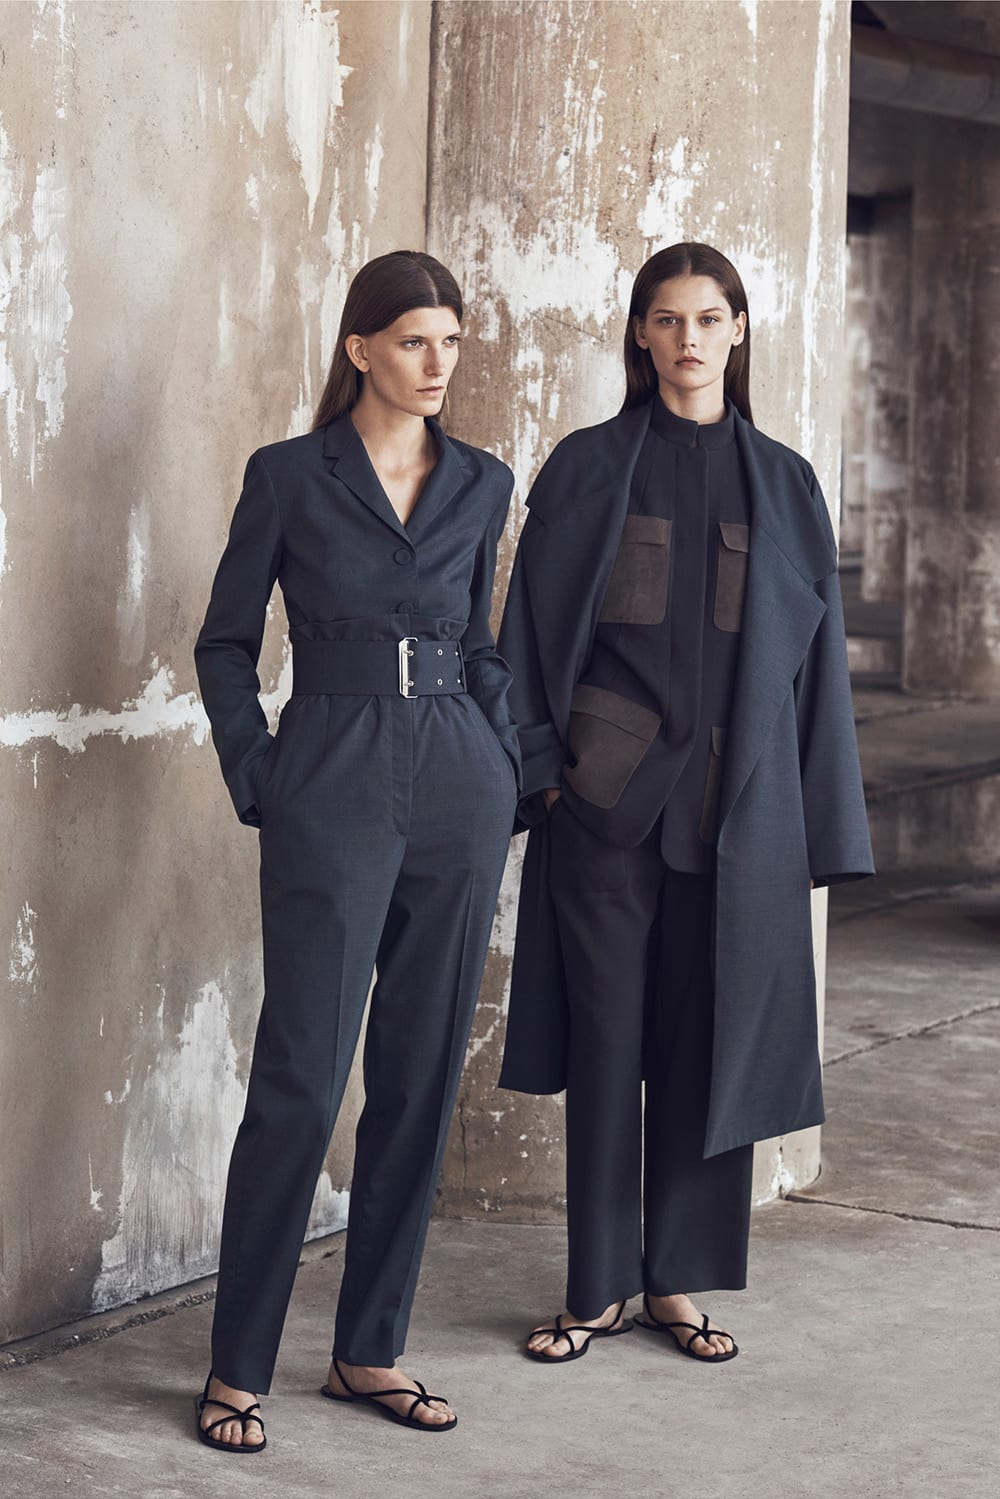 Style&Minimalism | Collections | The Row Resort '16 | Look 9